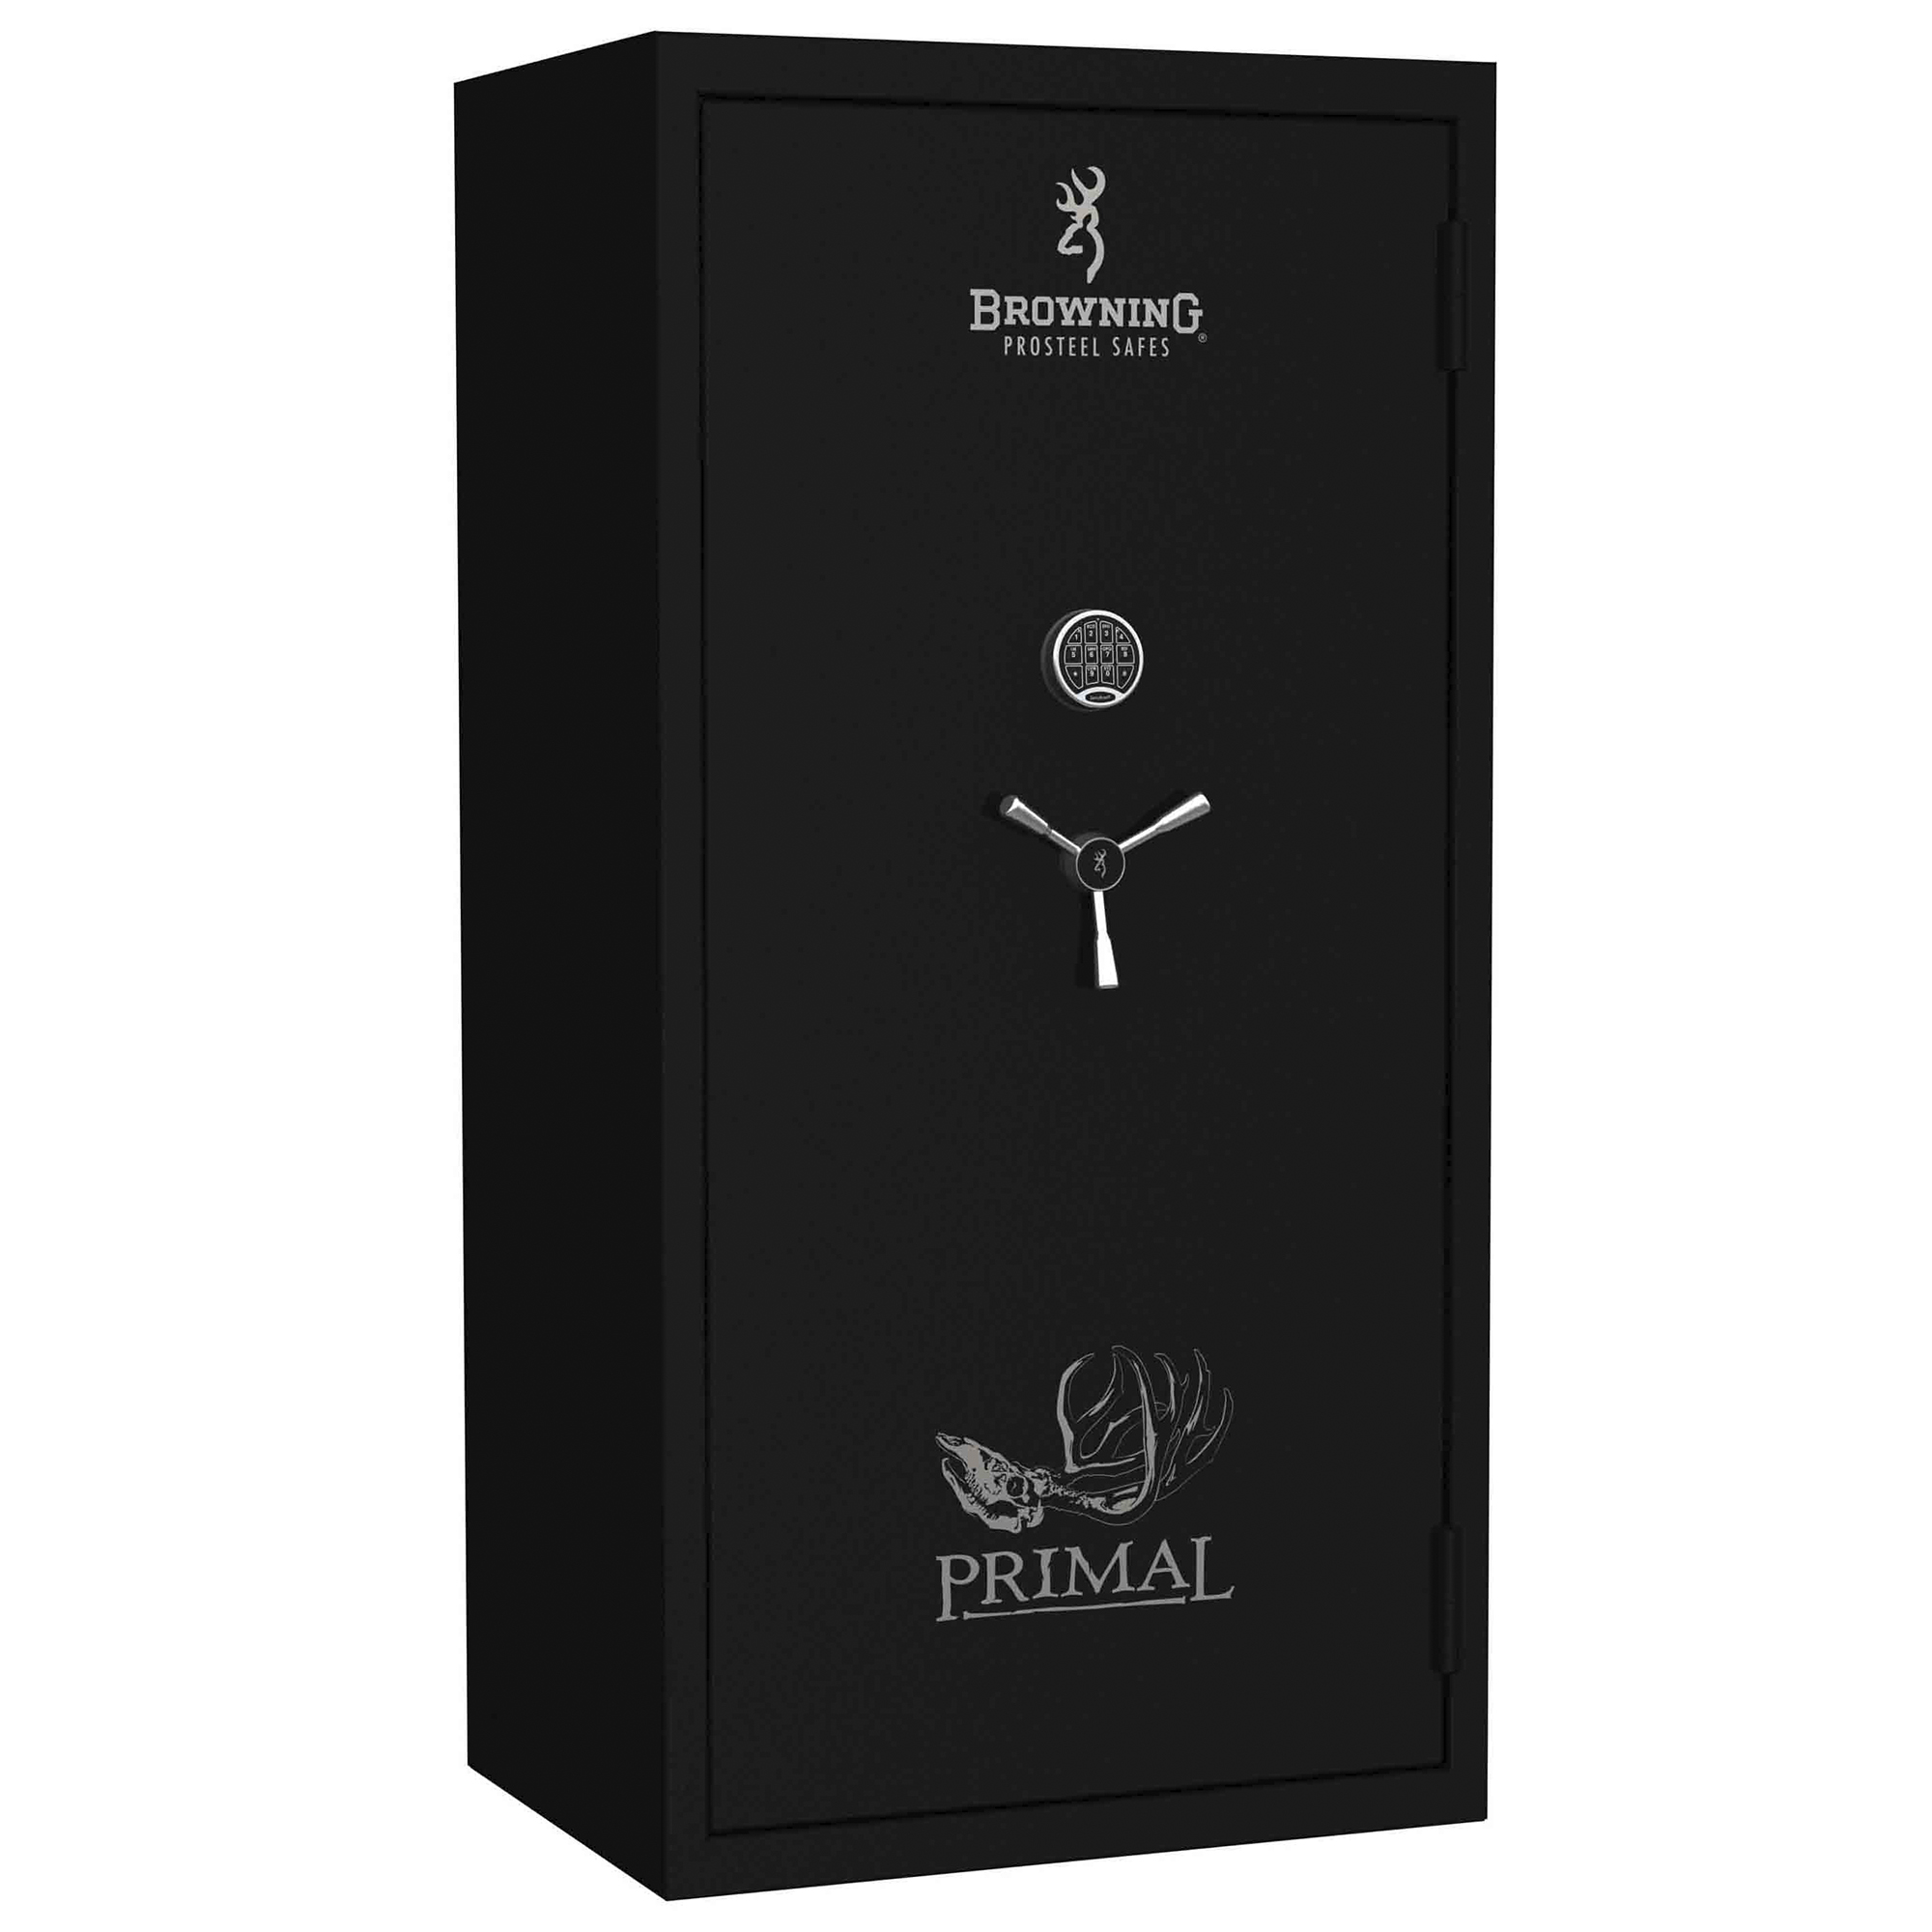 Browning Primal Series 23-Gun Safe, Electronic Lock